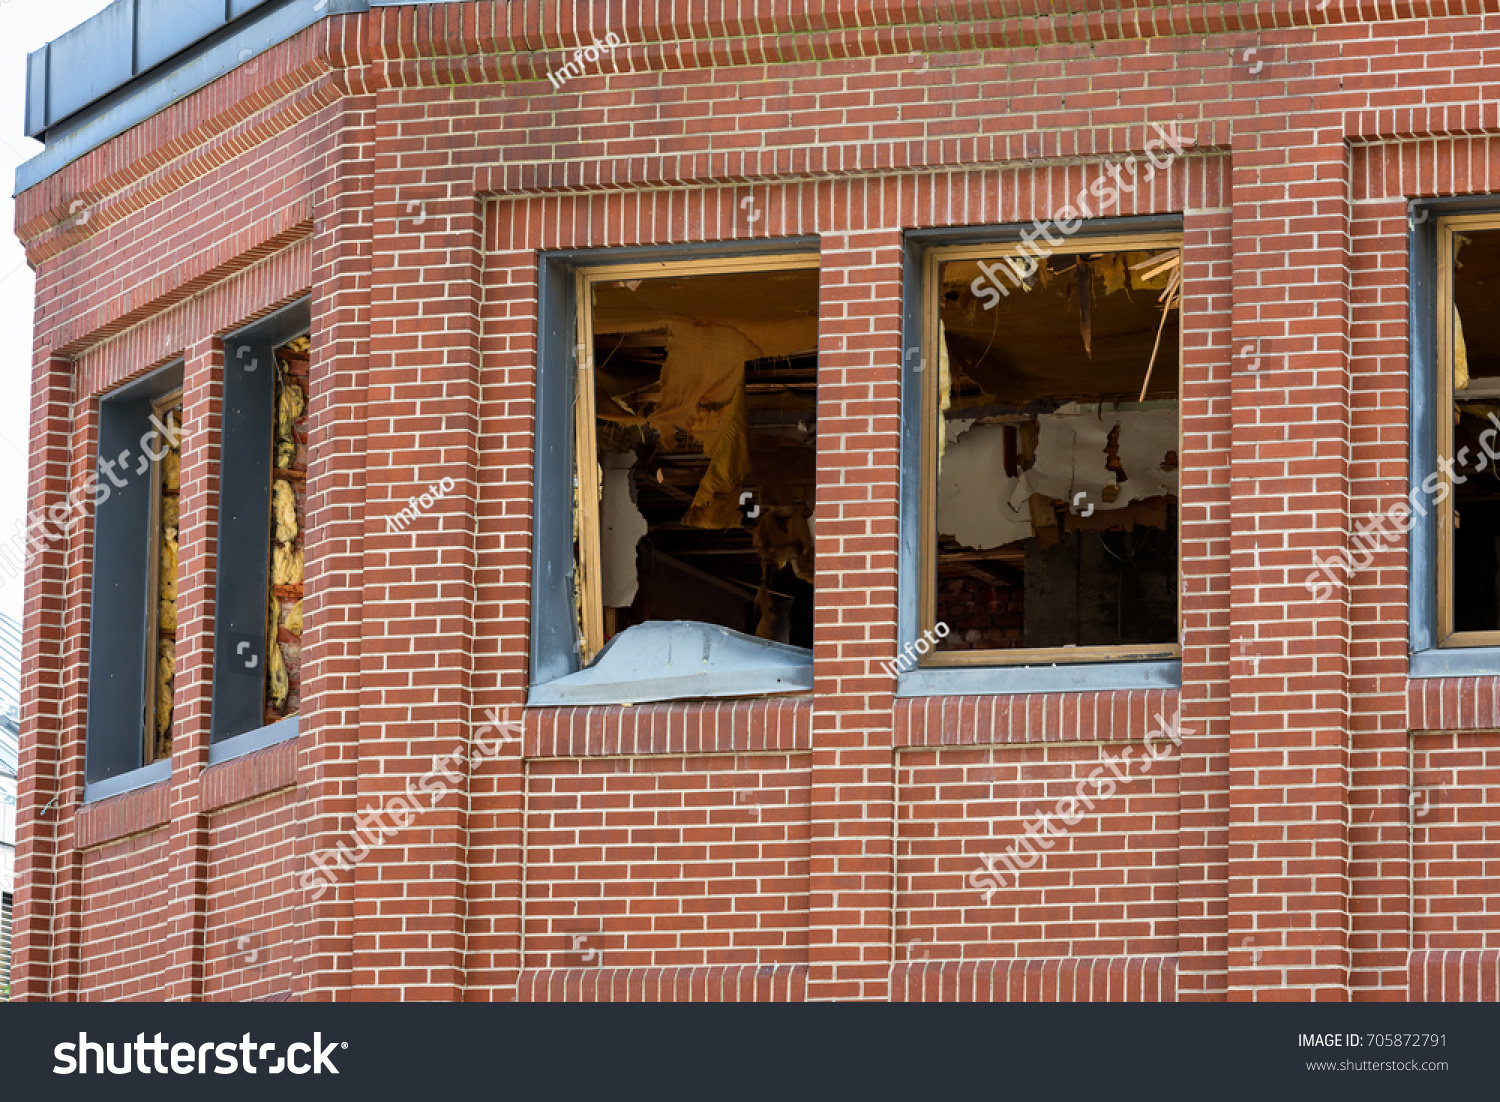 Trashed Apartments Red Brick Building No Stock Photo 705872791 ...